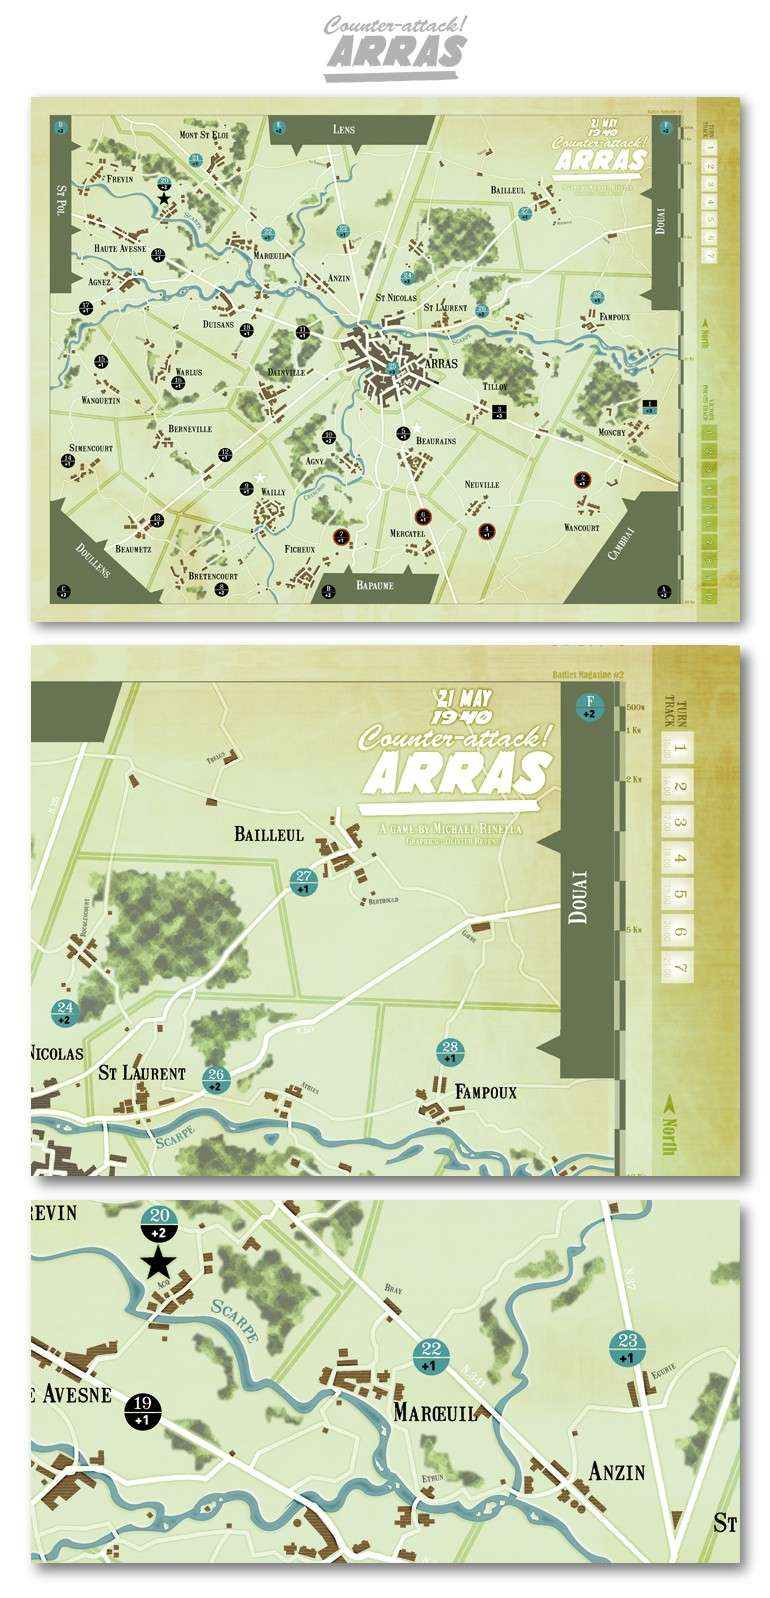 Counter-Attack ! Arras - 21 mai 1940 Arrass11